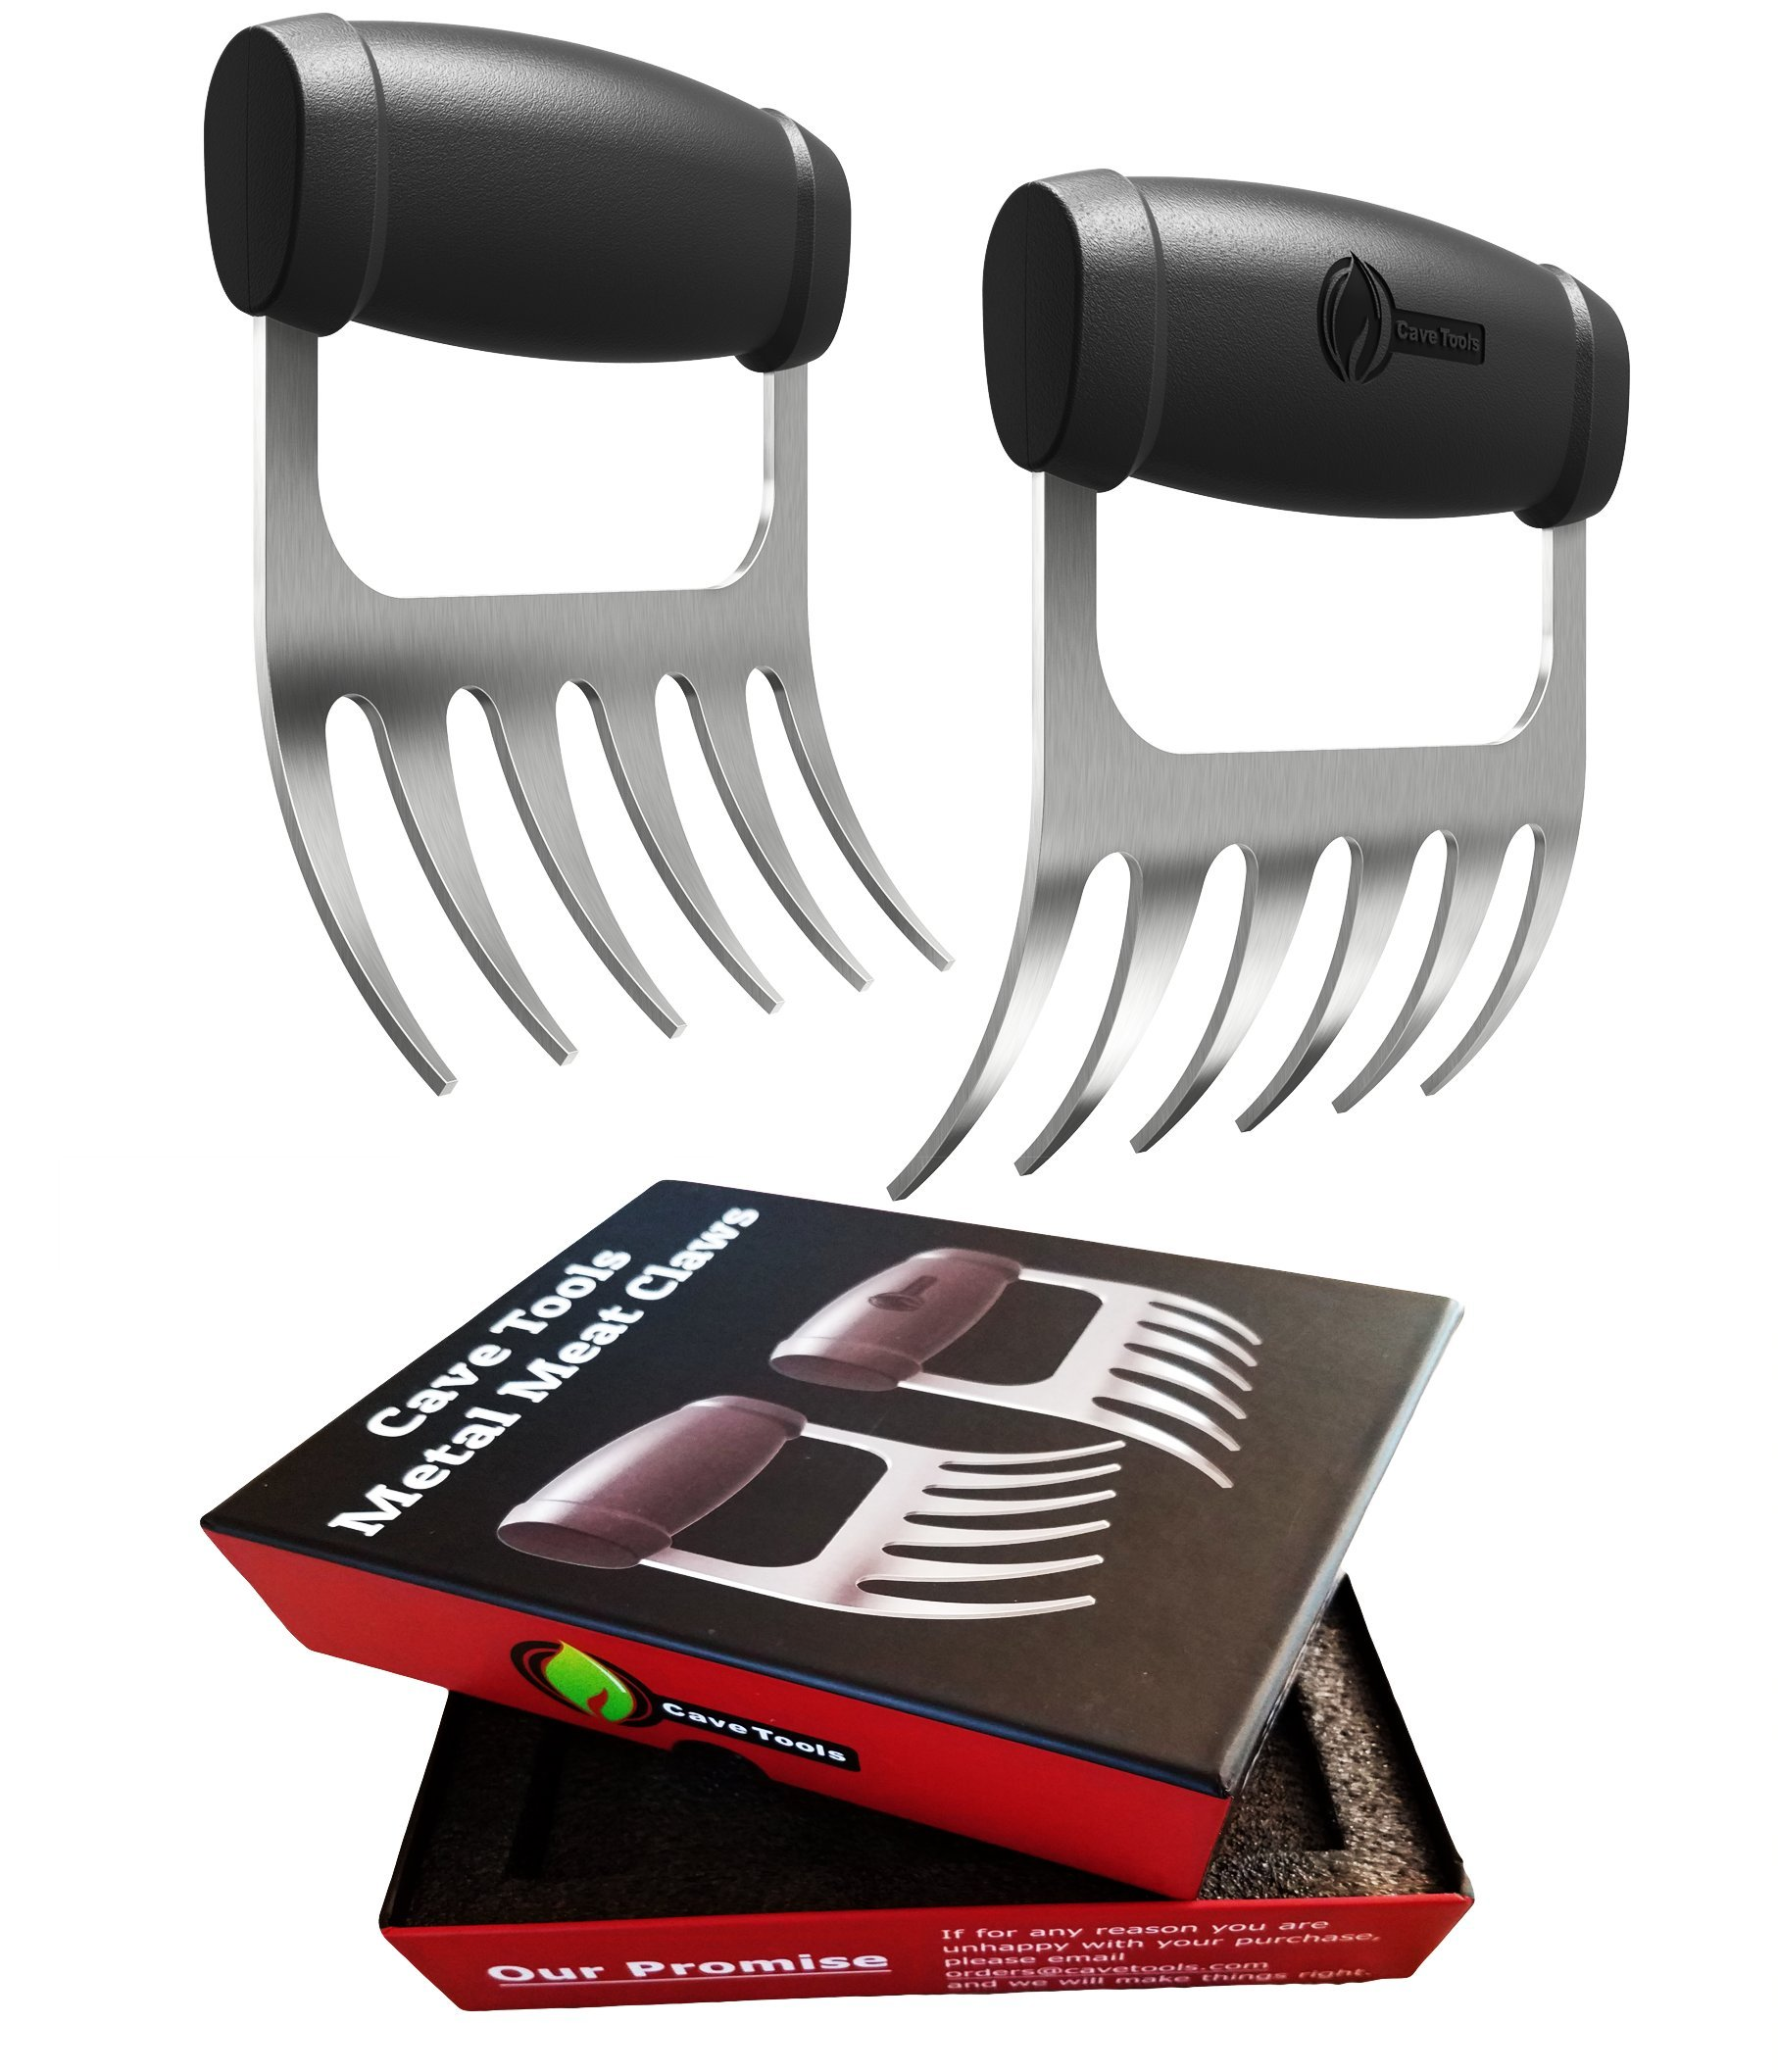 Cave Tools Meat Claws - Stainless Steel Pulled Pork SHREDDERS - BBQ Forks for Shredding Handling & Carving Food from Grill Smoker or Crock Pot - Metal Barbecue Slow Cooker Handler Accessories